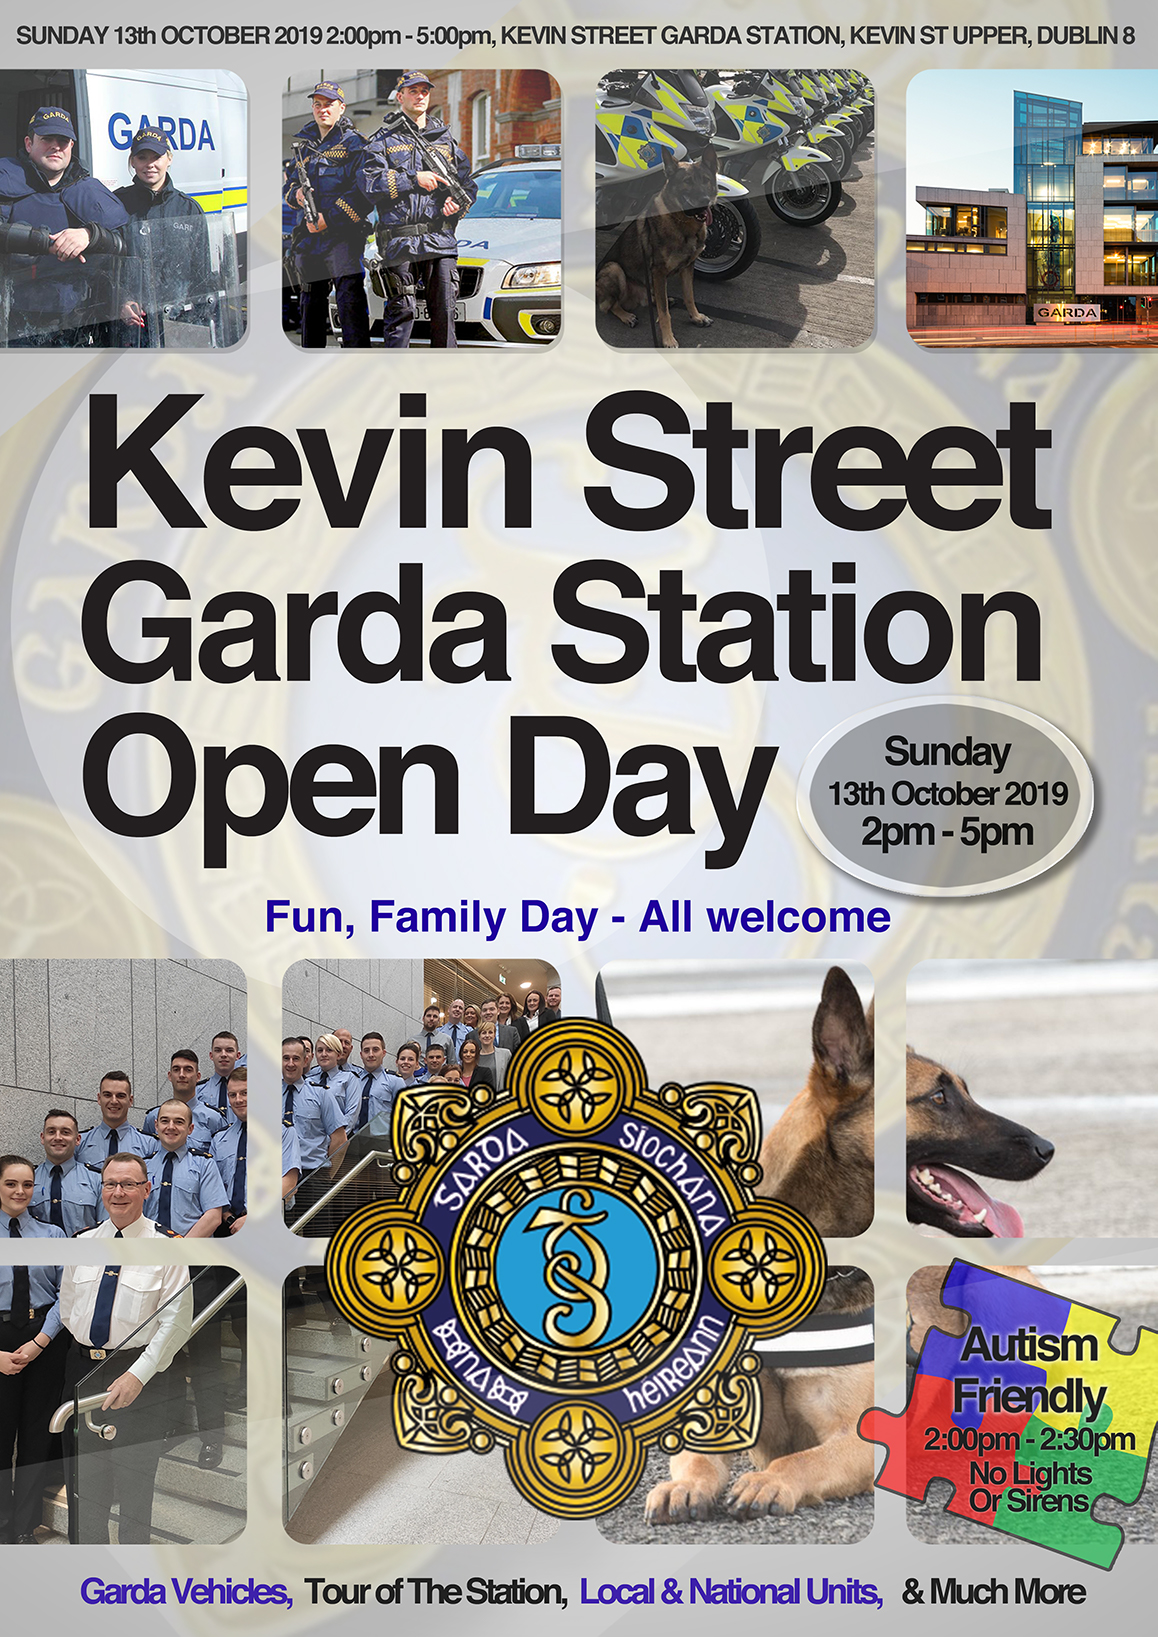 This Sunday, 13th October 2019, Superintendent John Gordon of Kevin Street Garda Divisional Headquarters is hosting a Station Open Day. The event will run from 2-5pm (Autism Friendly from 2-2:30pm [No Lights or Sirens]), during which time members of the public are invited to tour the station, meet with various local and national units (including Garda Dog Unit, Garda Armed Support Unit and many more), view and experience various Garda vehicles and equipment etc. This is a family event and everyone is welcome.